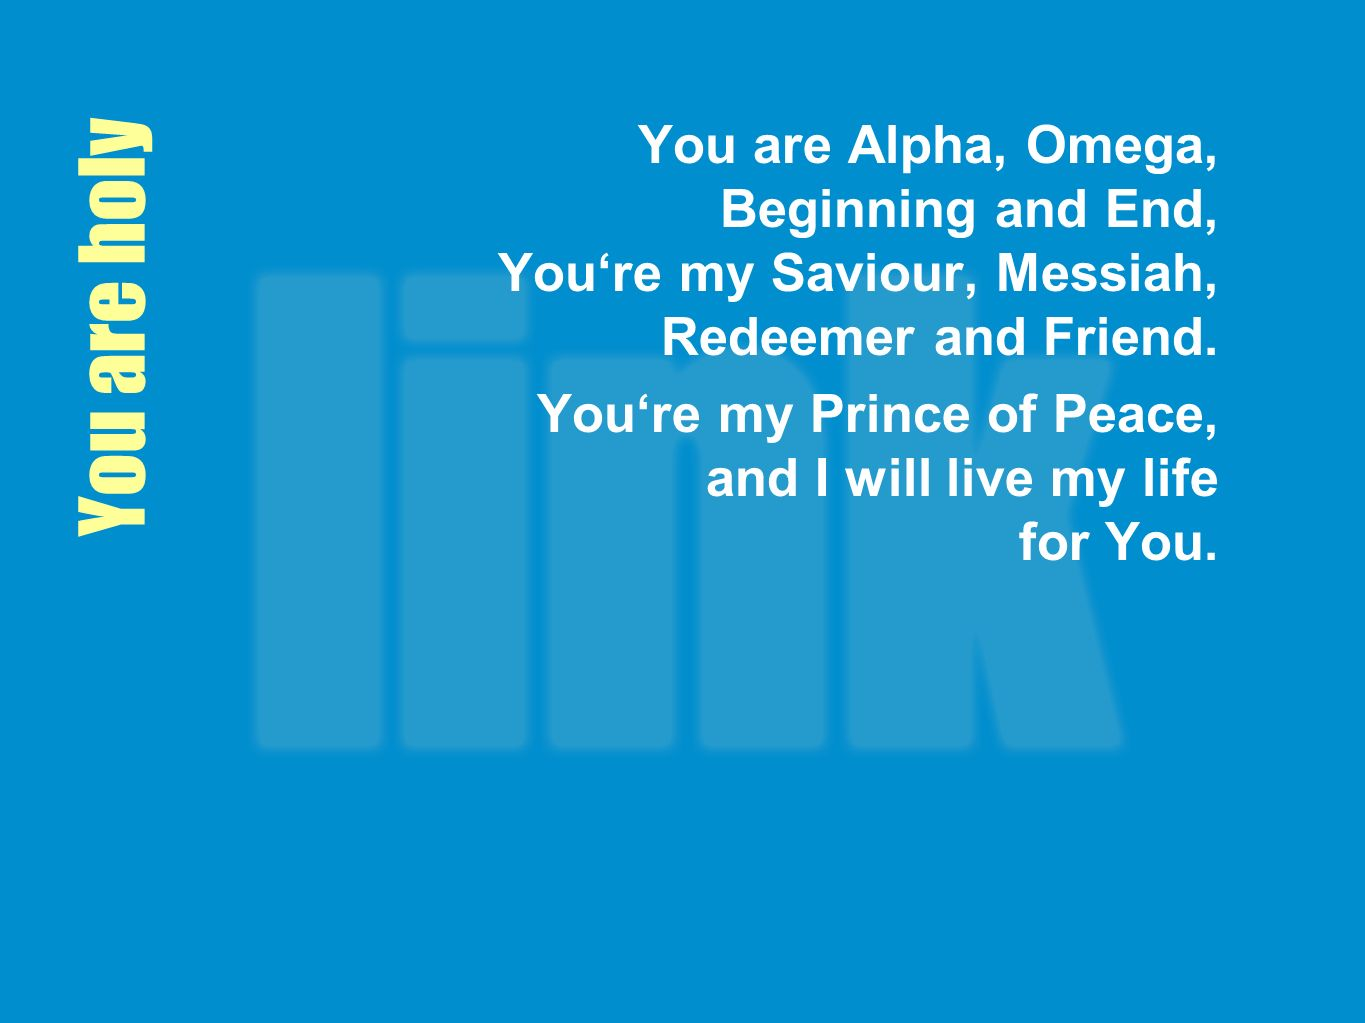 You are Alpha, Omega, Beginning and End, You're my Saviour, Messiah, Redeemer and Friend.